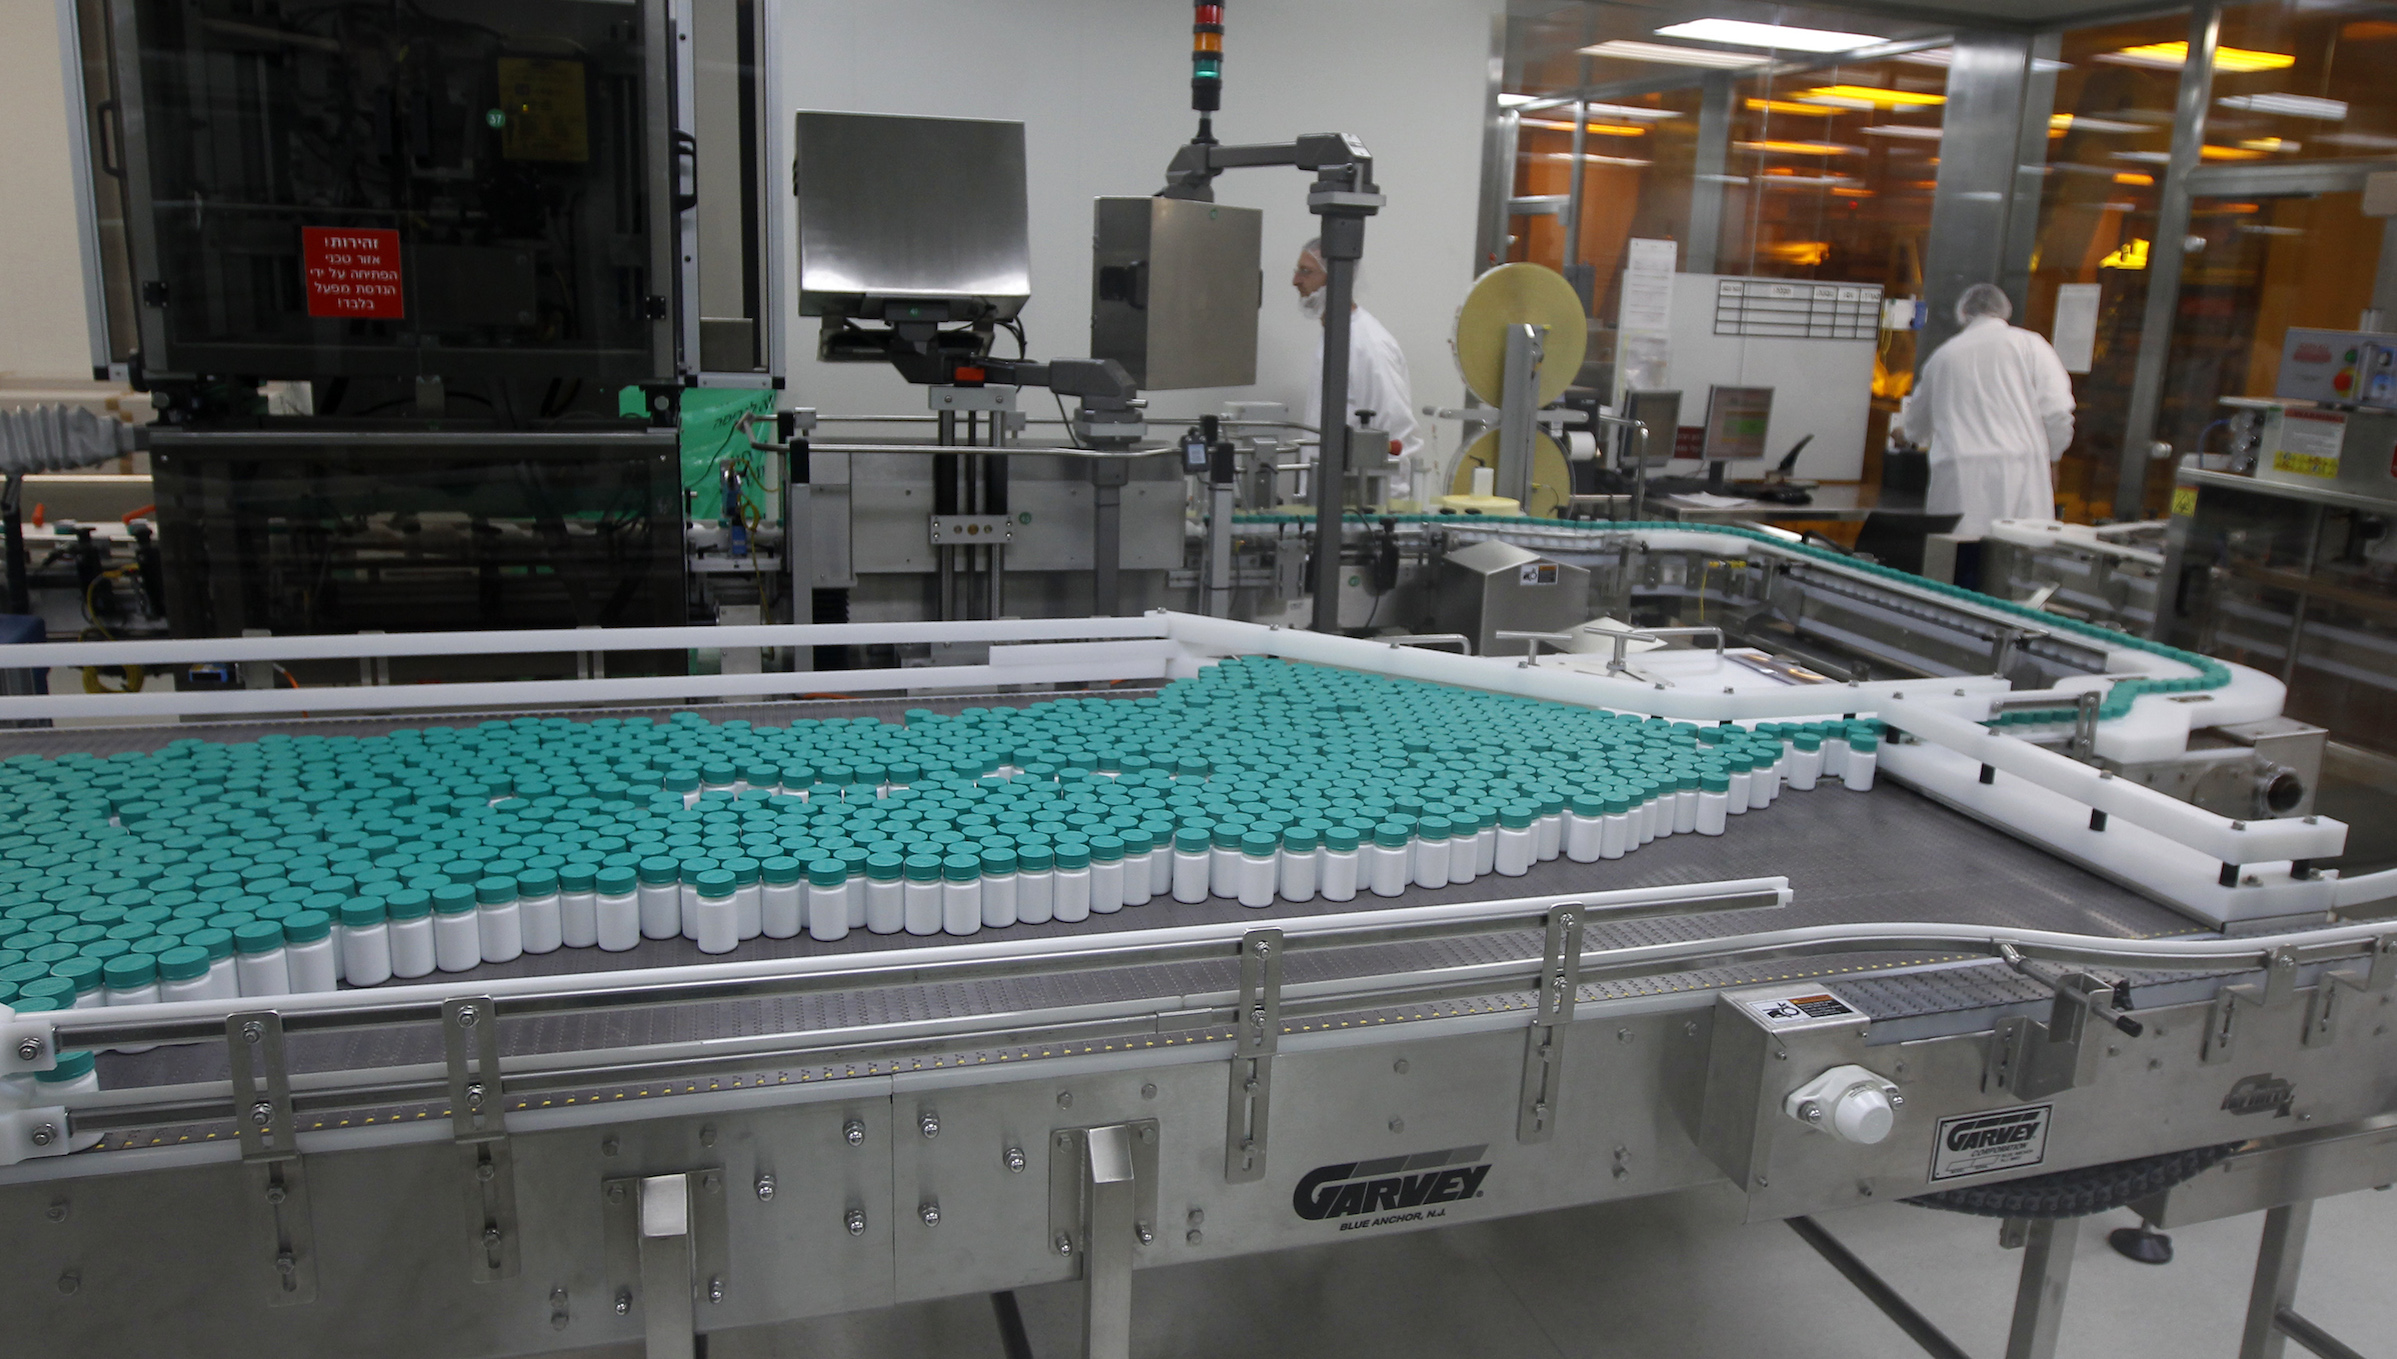 Employees of Teva Pharmaceutical Industries work near pill bottles on a conveyor belt at the company's Jerusalem oral solid dosage plant (OSD) December 21, 2011. Israel-based Teva is the world's leading generic drugmaker.   REUTERS/Ronen Zvulun  (JERUSALEM - Tags: BUSINESS DRUGS SOCIETY) - RTR2VIEP